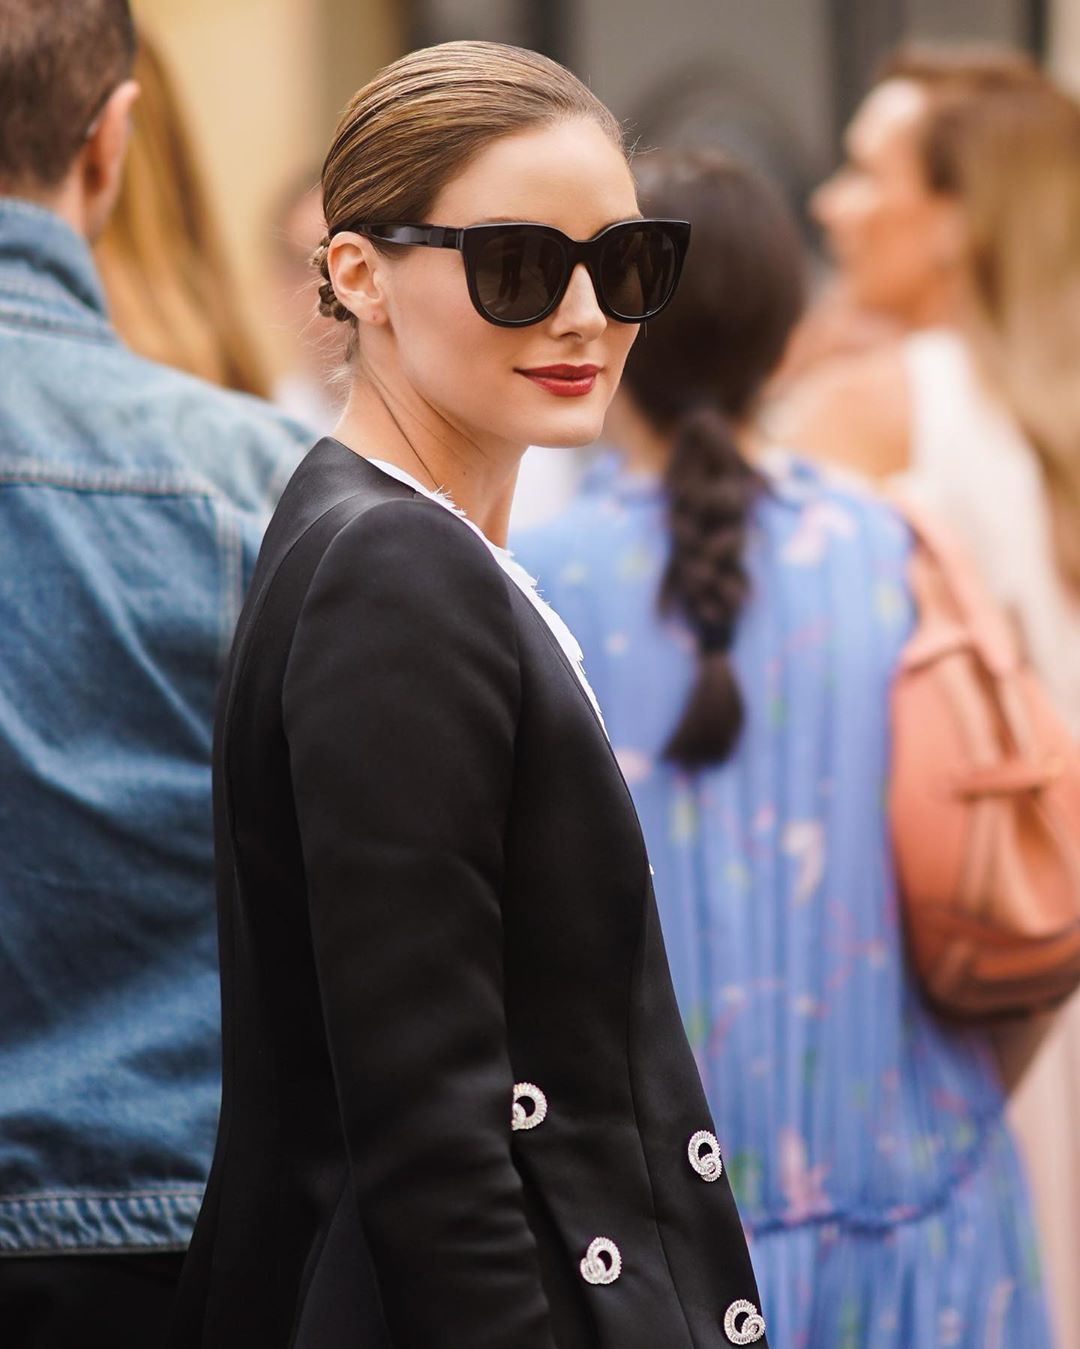 olivia-palermo in westward leaning moore 01 black